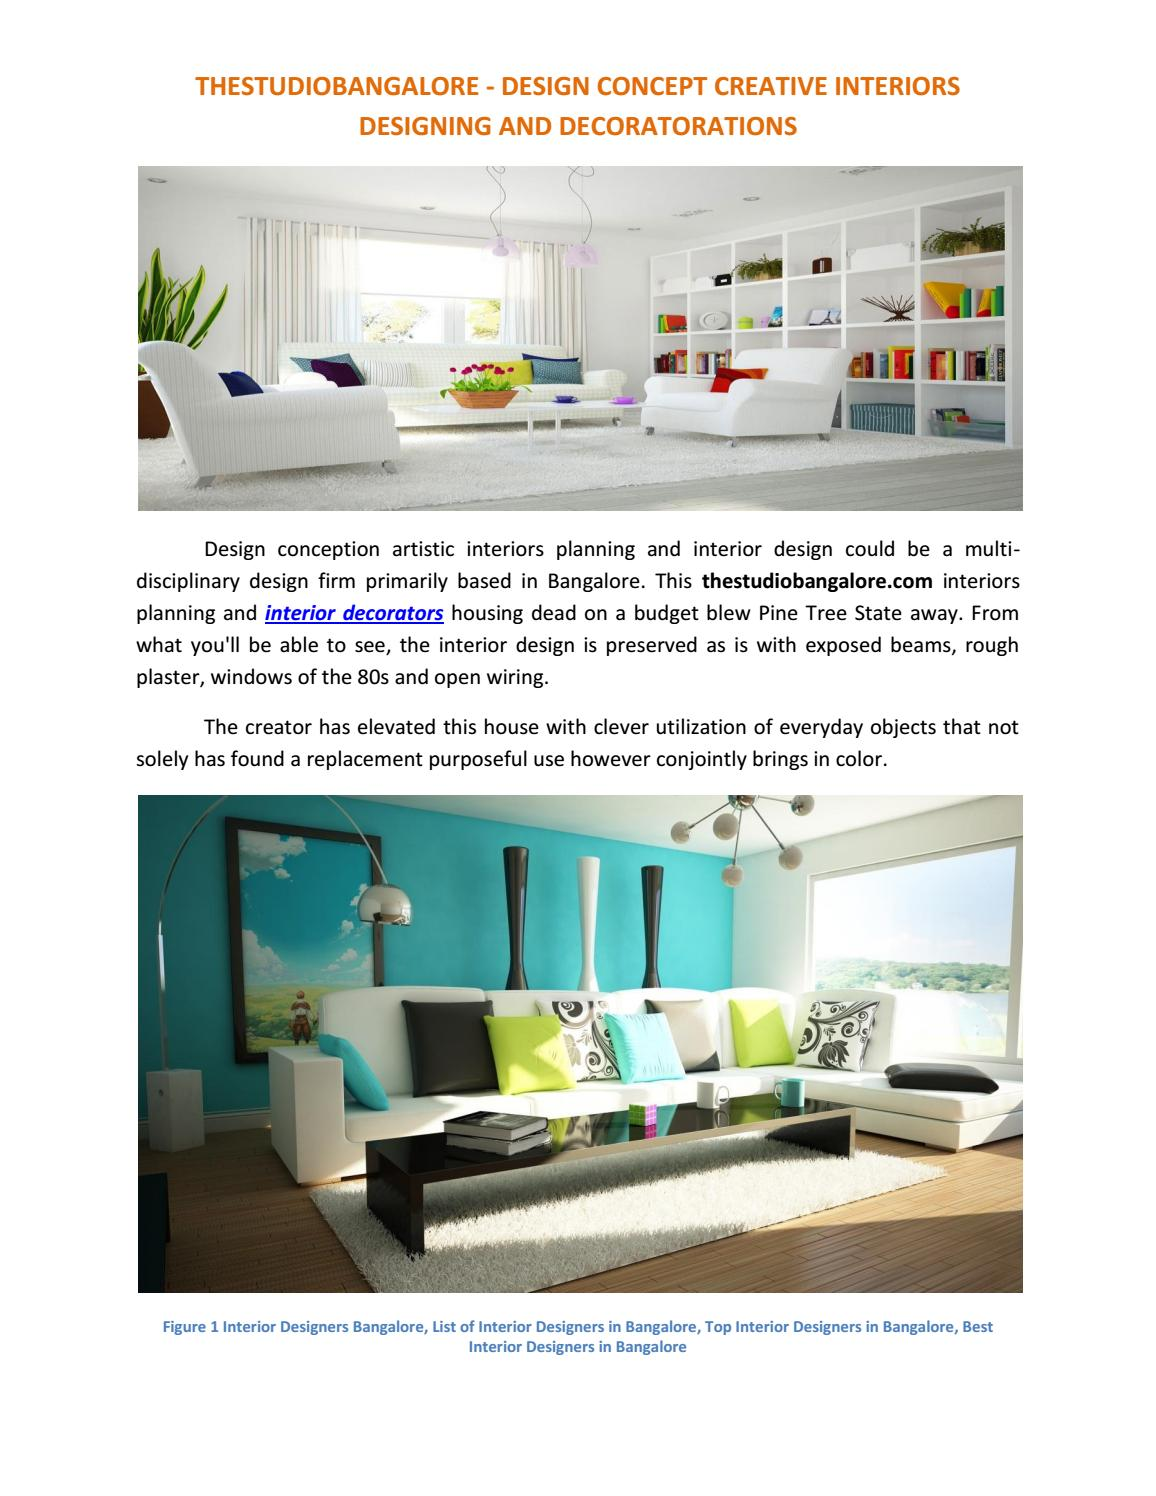 Interior Designers And Decorators Thestudiobangalore By Vijay